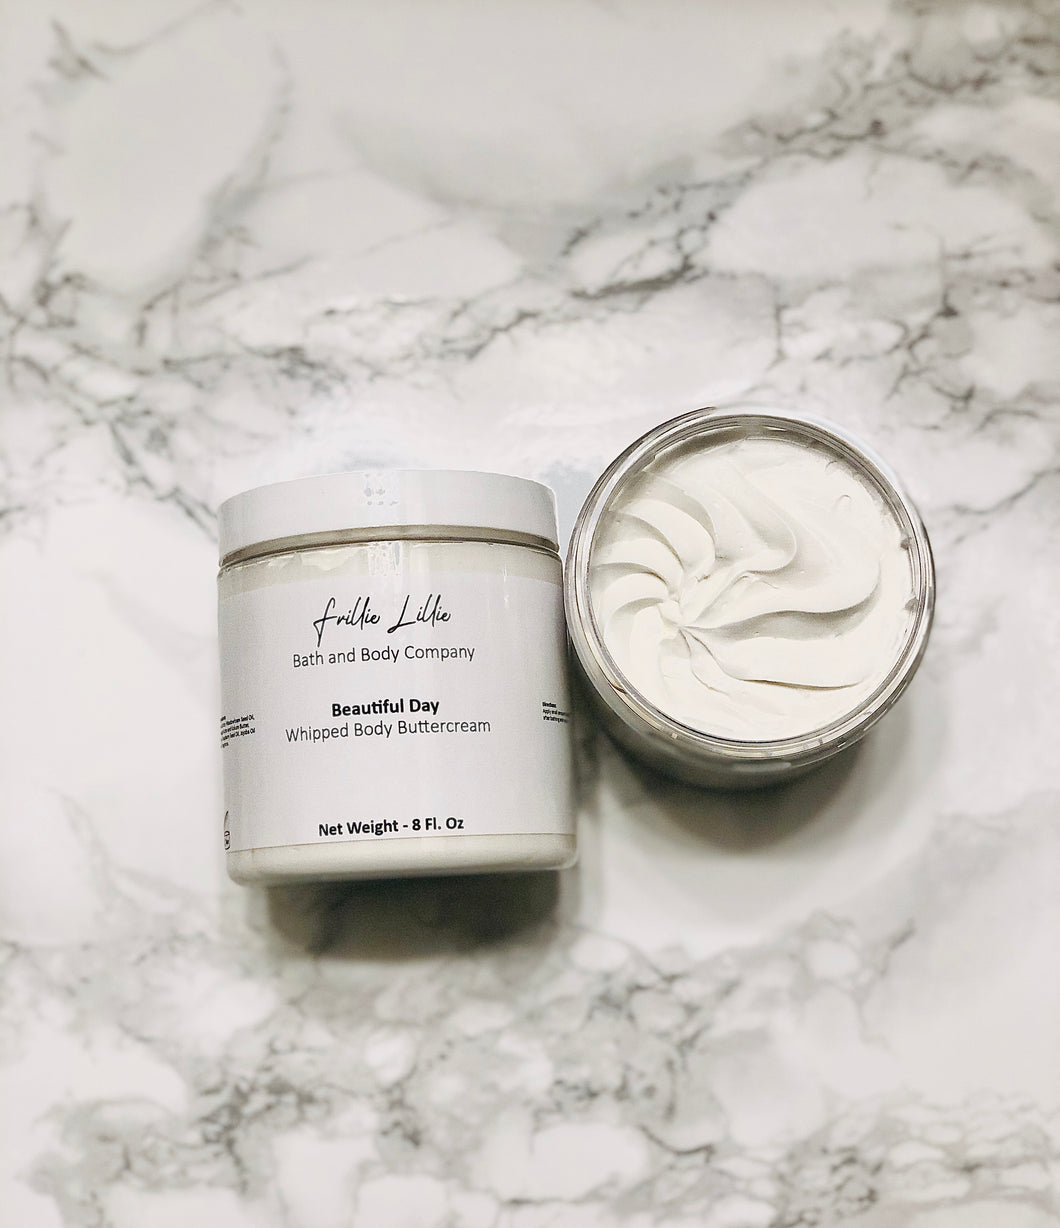 Beautiful Day Body Butter